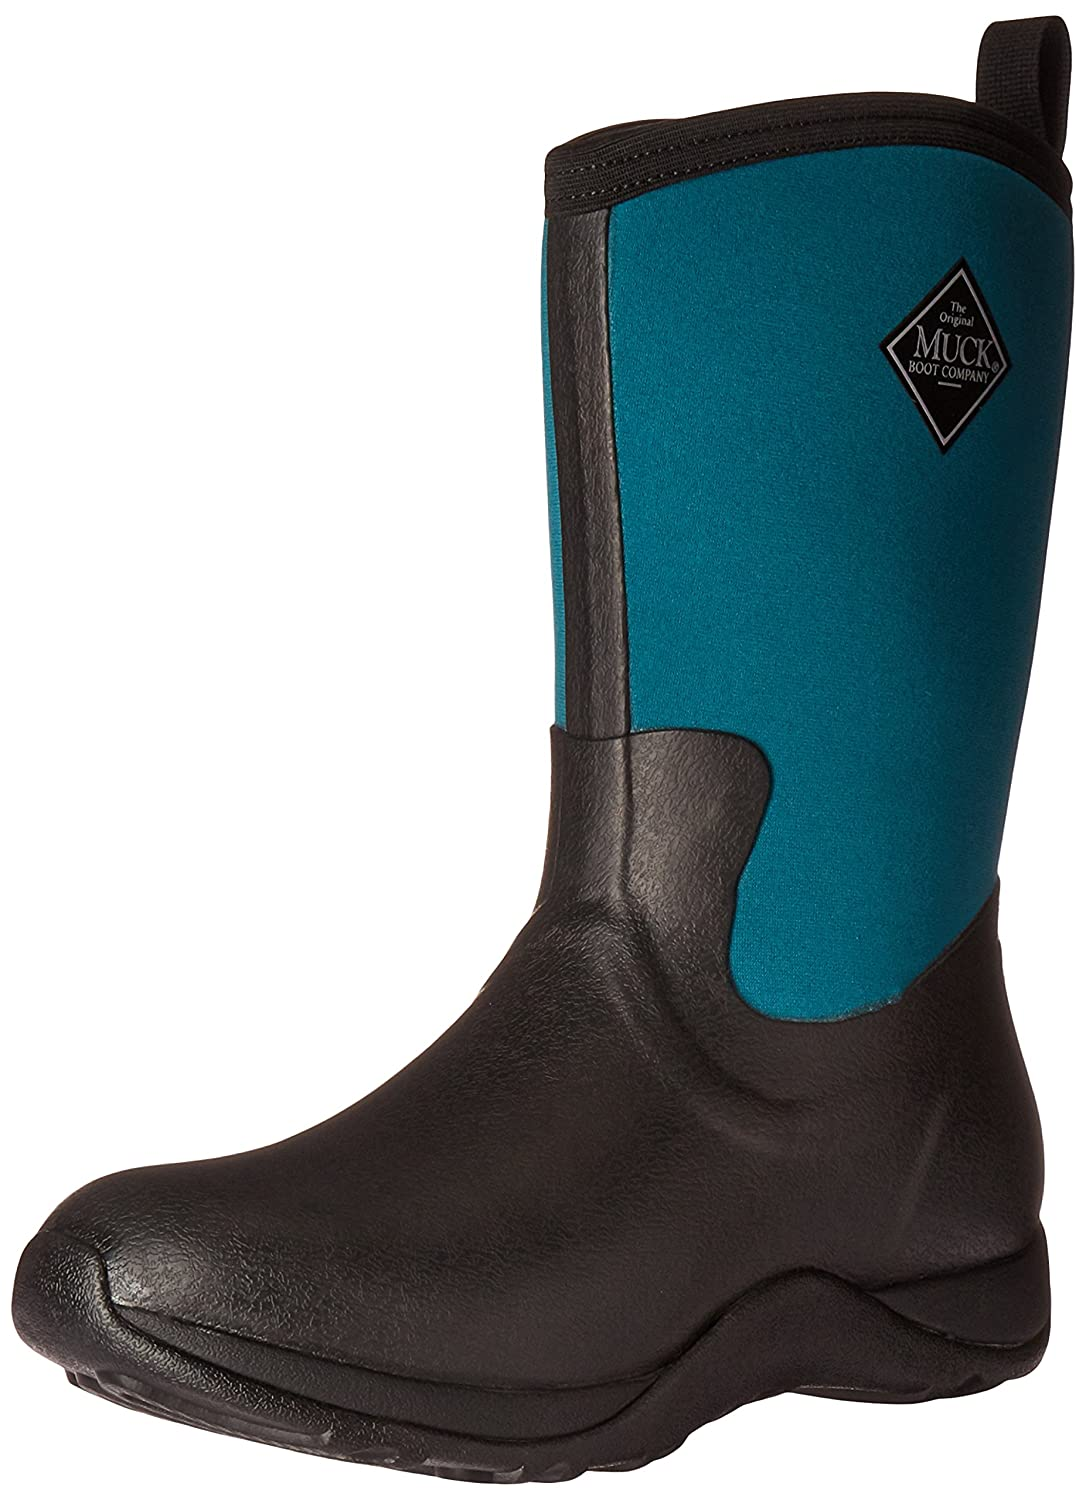 Muck Boot Women's Arctic Weekend Mid Snow B01M0JELMP 10 M US|Black/Shaded Spruce